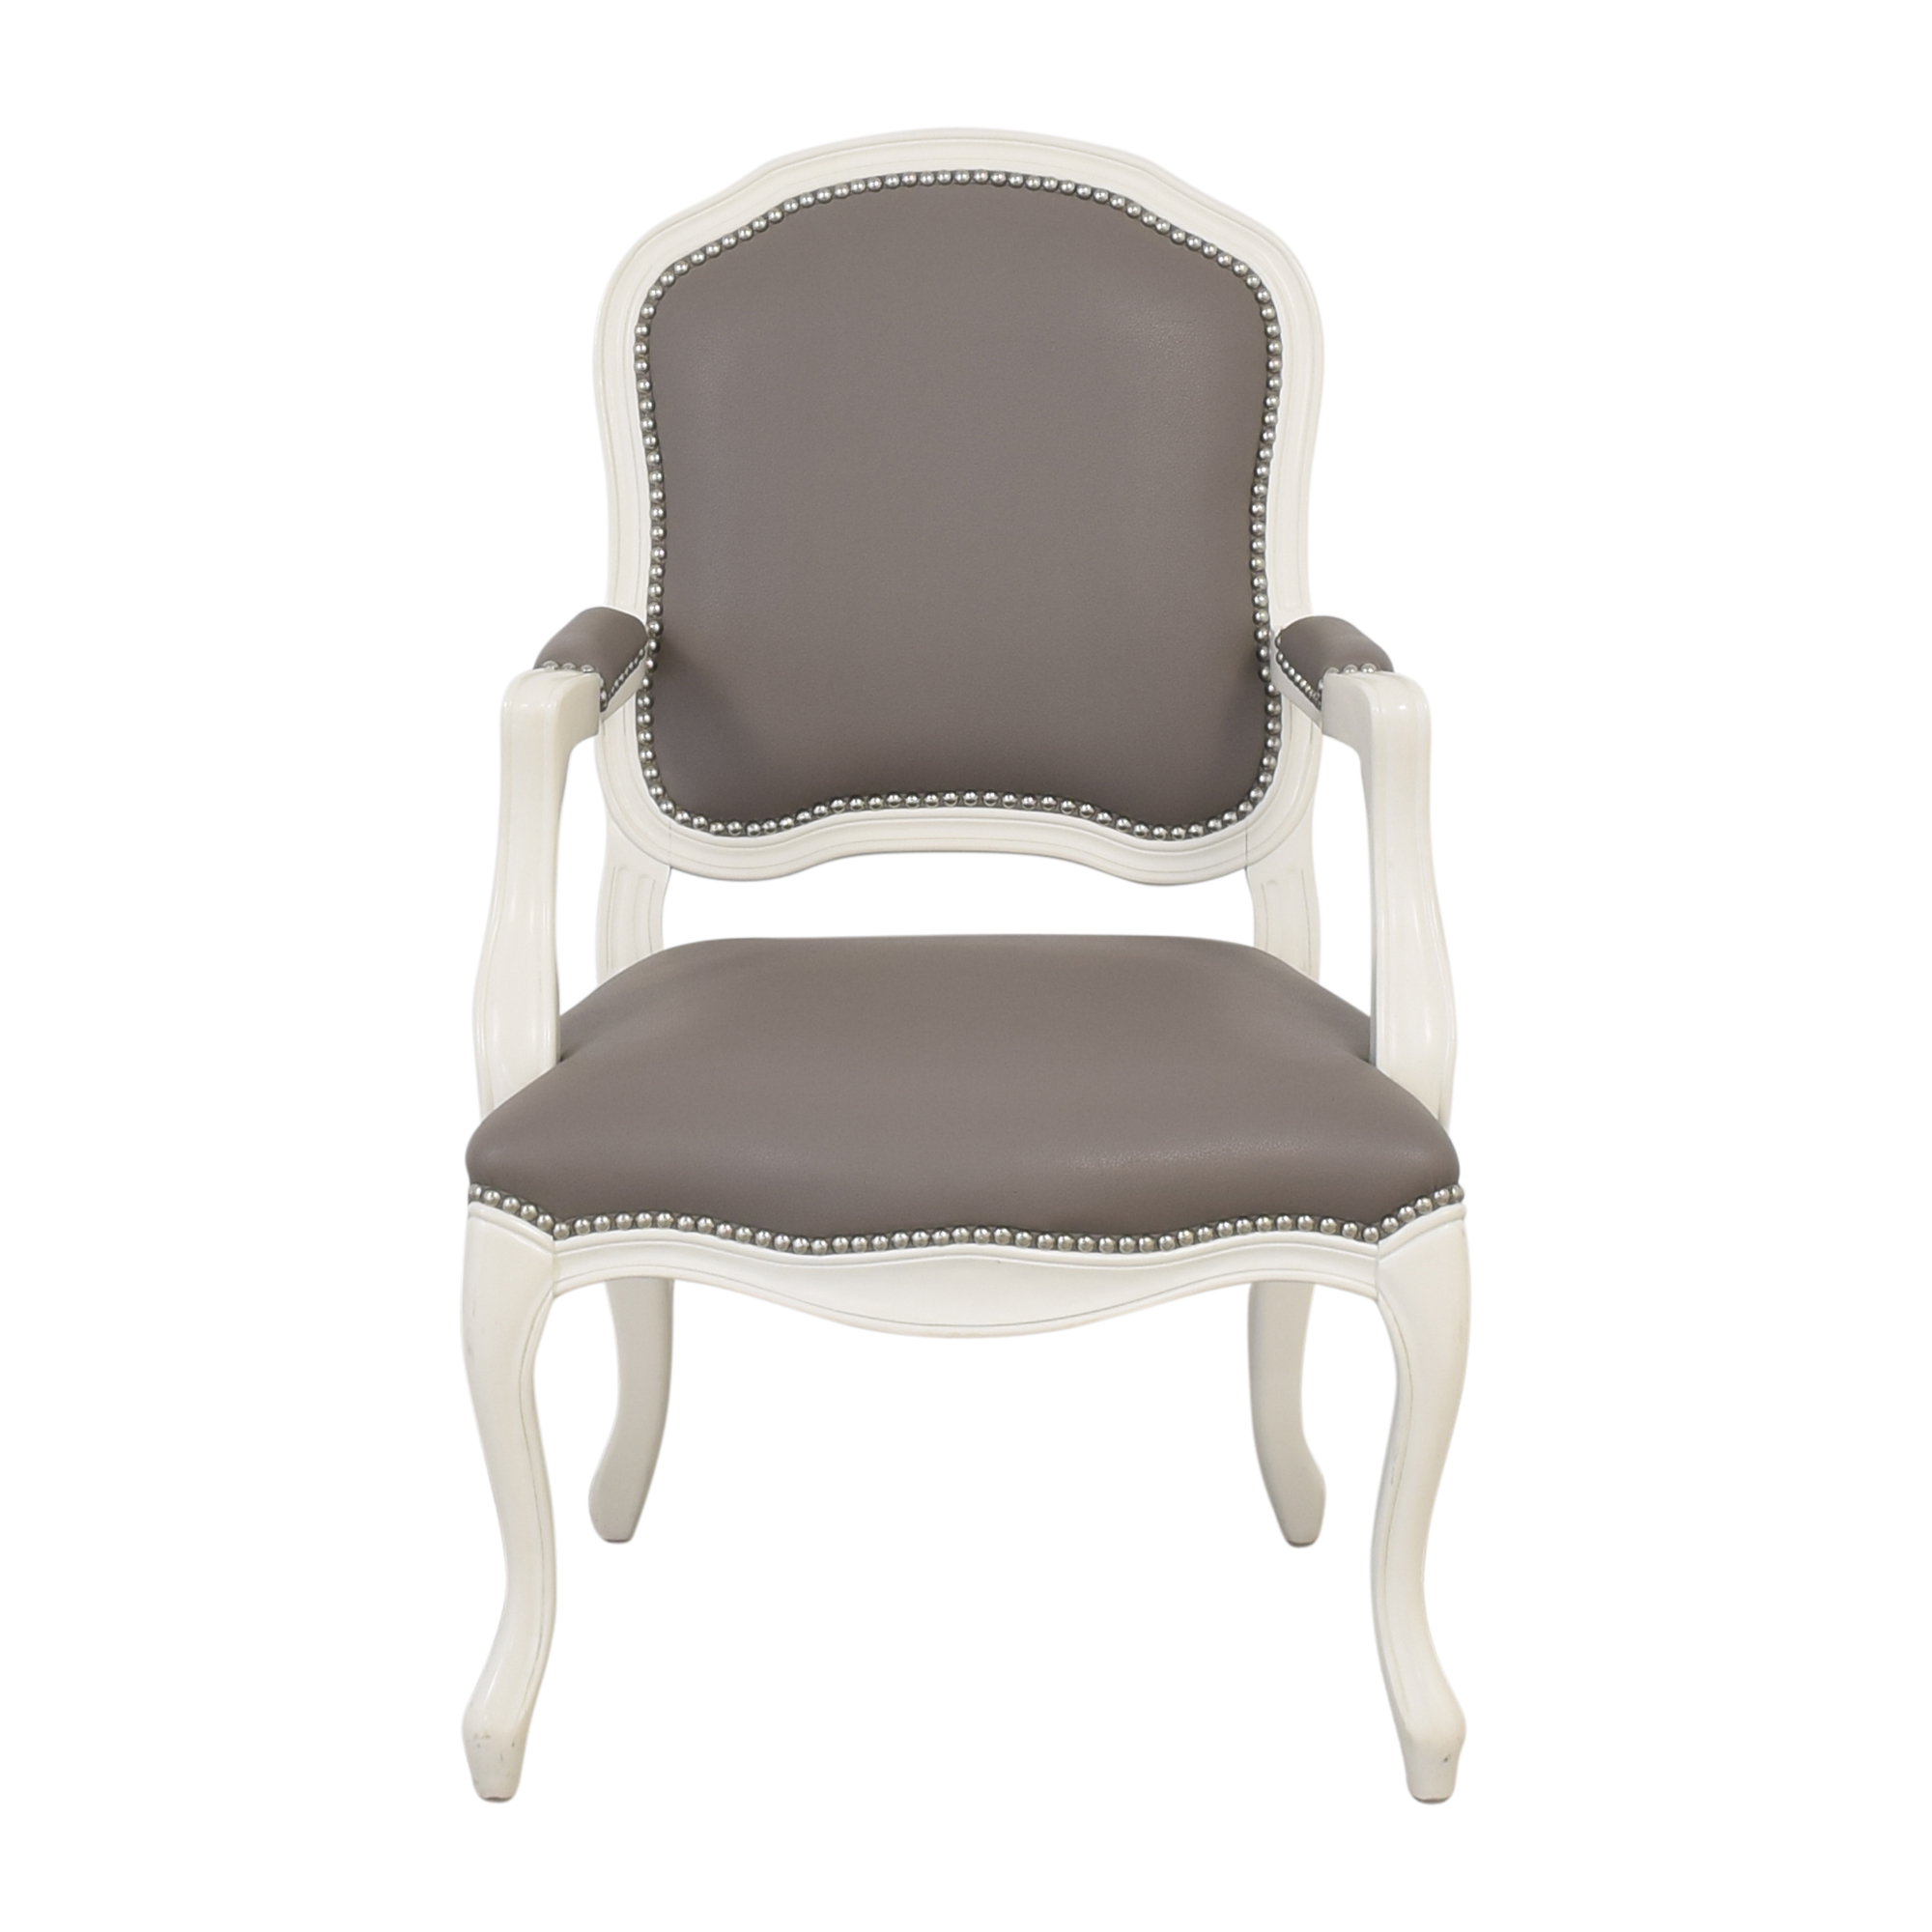 buy CB2 Stick Around Chair CB2 Chairs